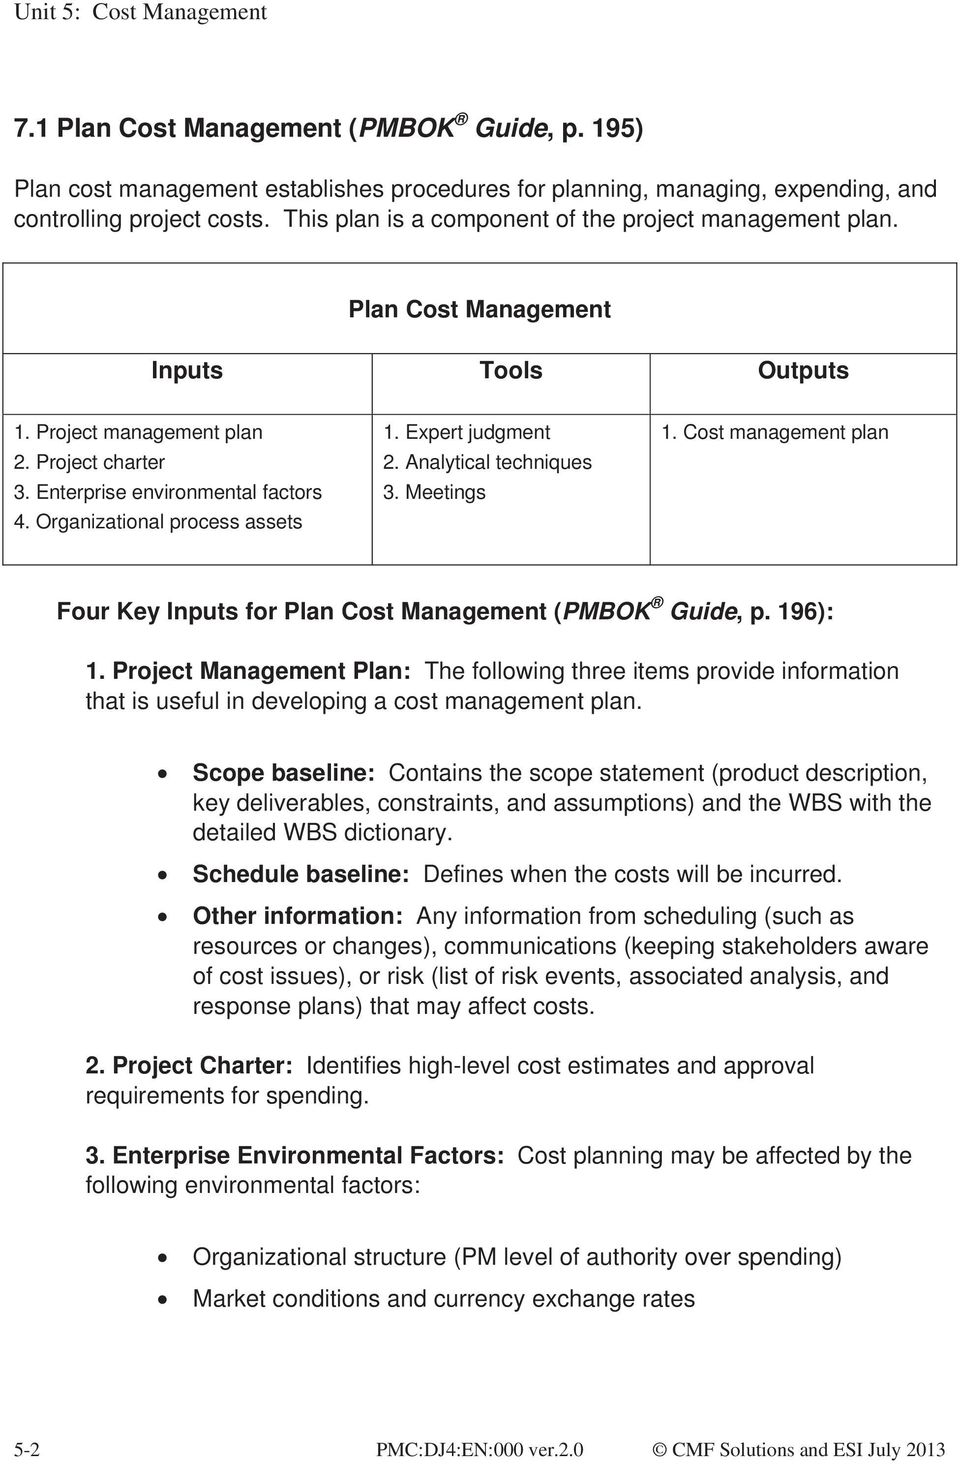 Unit 5: Cost Management (PMBOK Guide, Chapter 7) - PDF